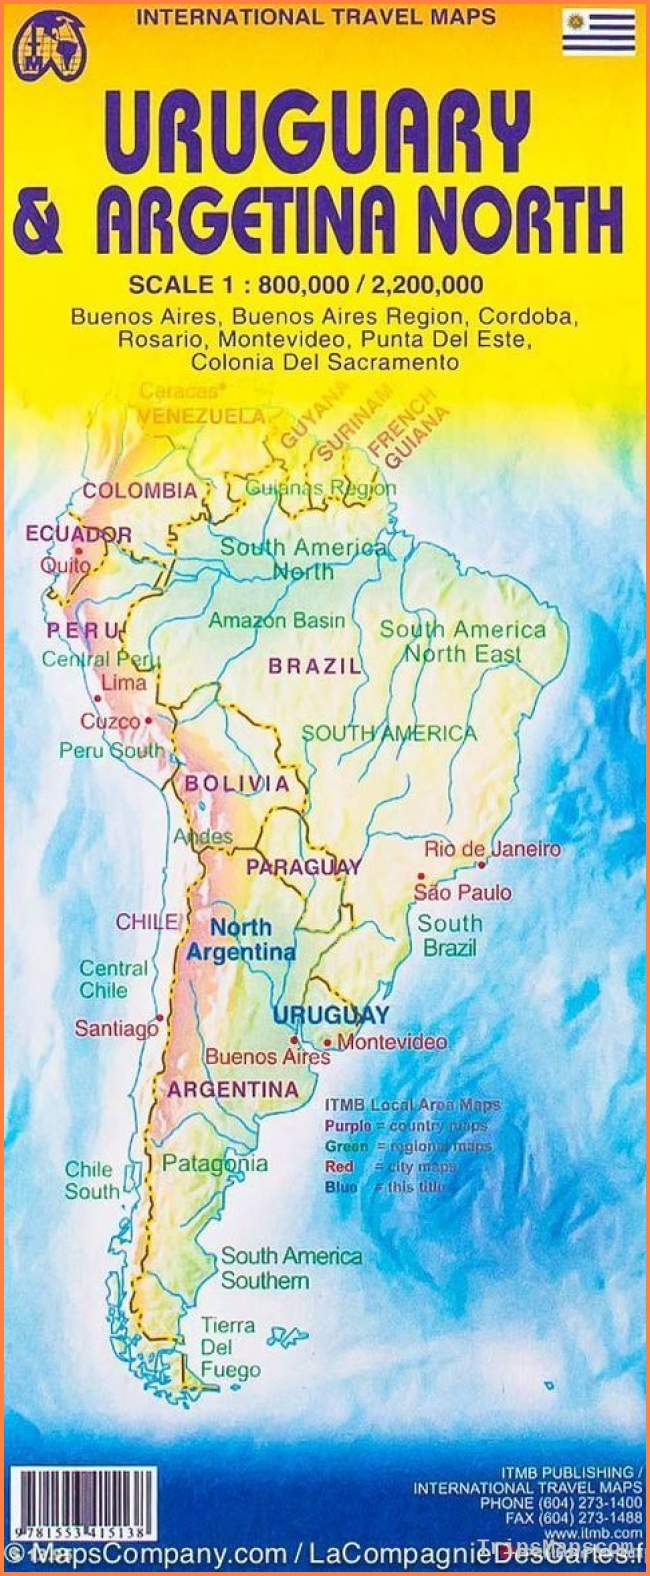 Map of northern Argentina & Uruguay